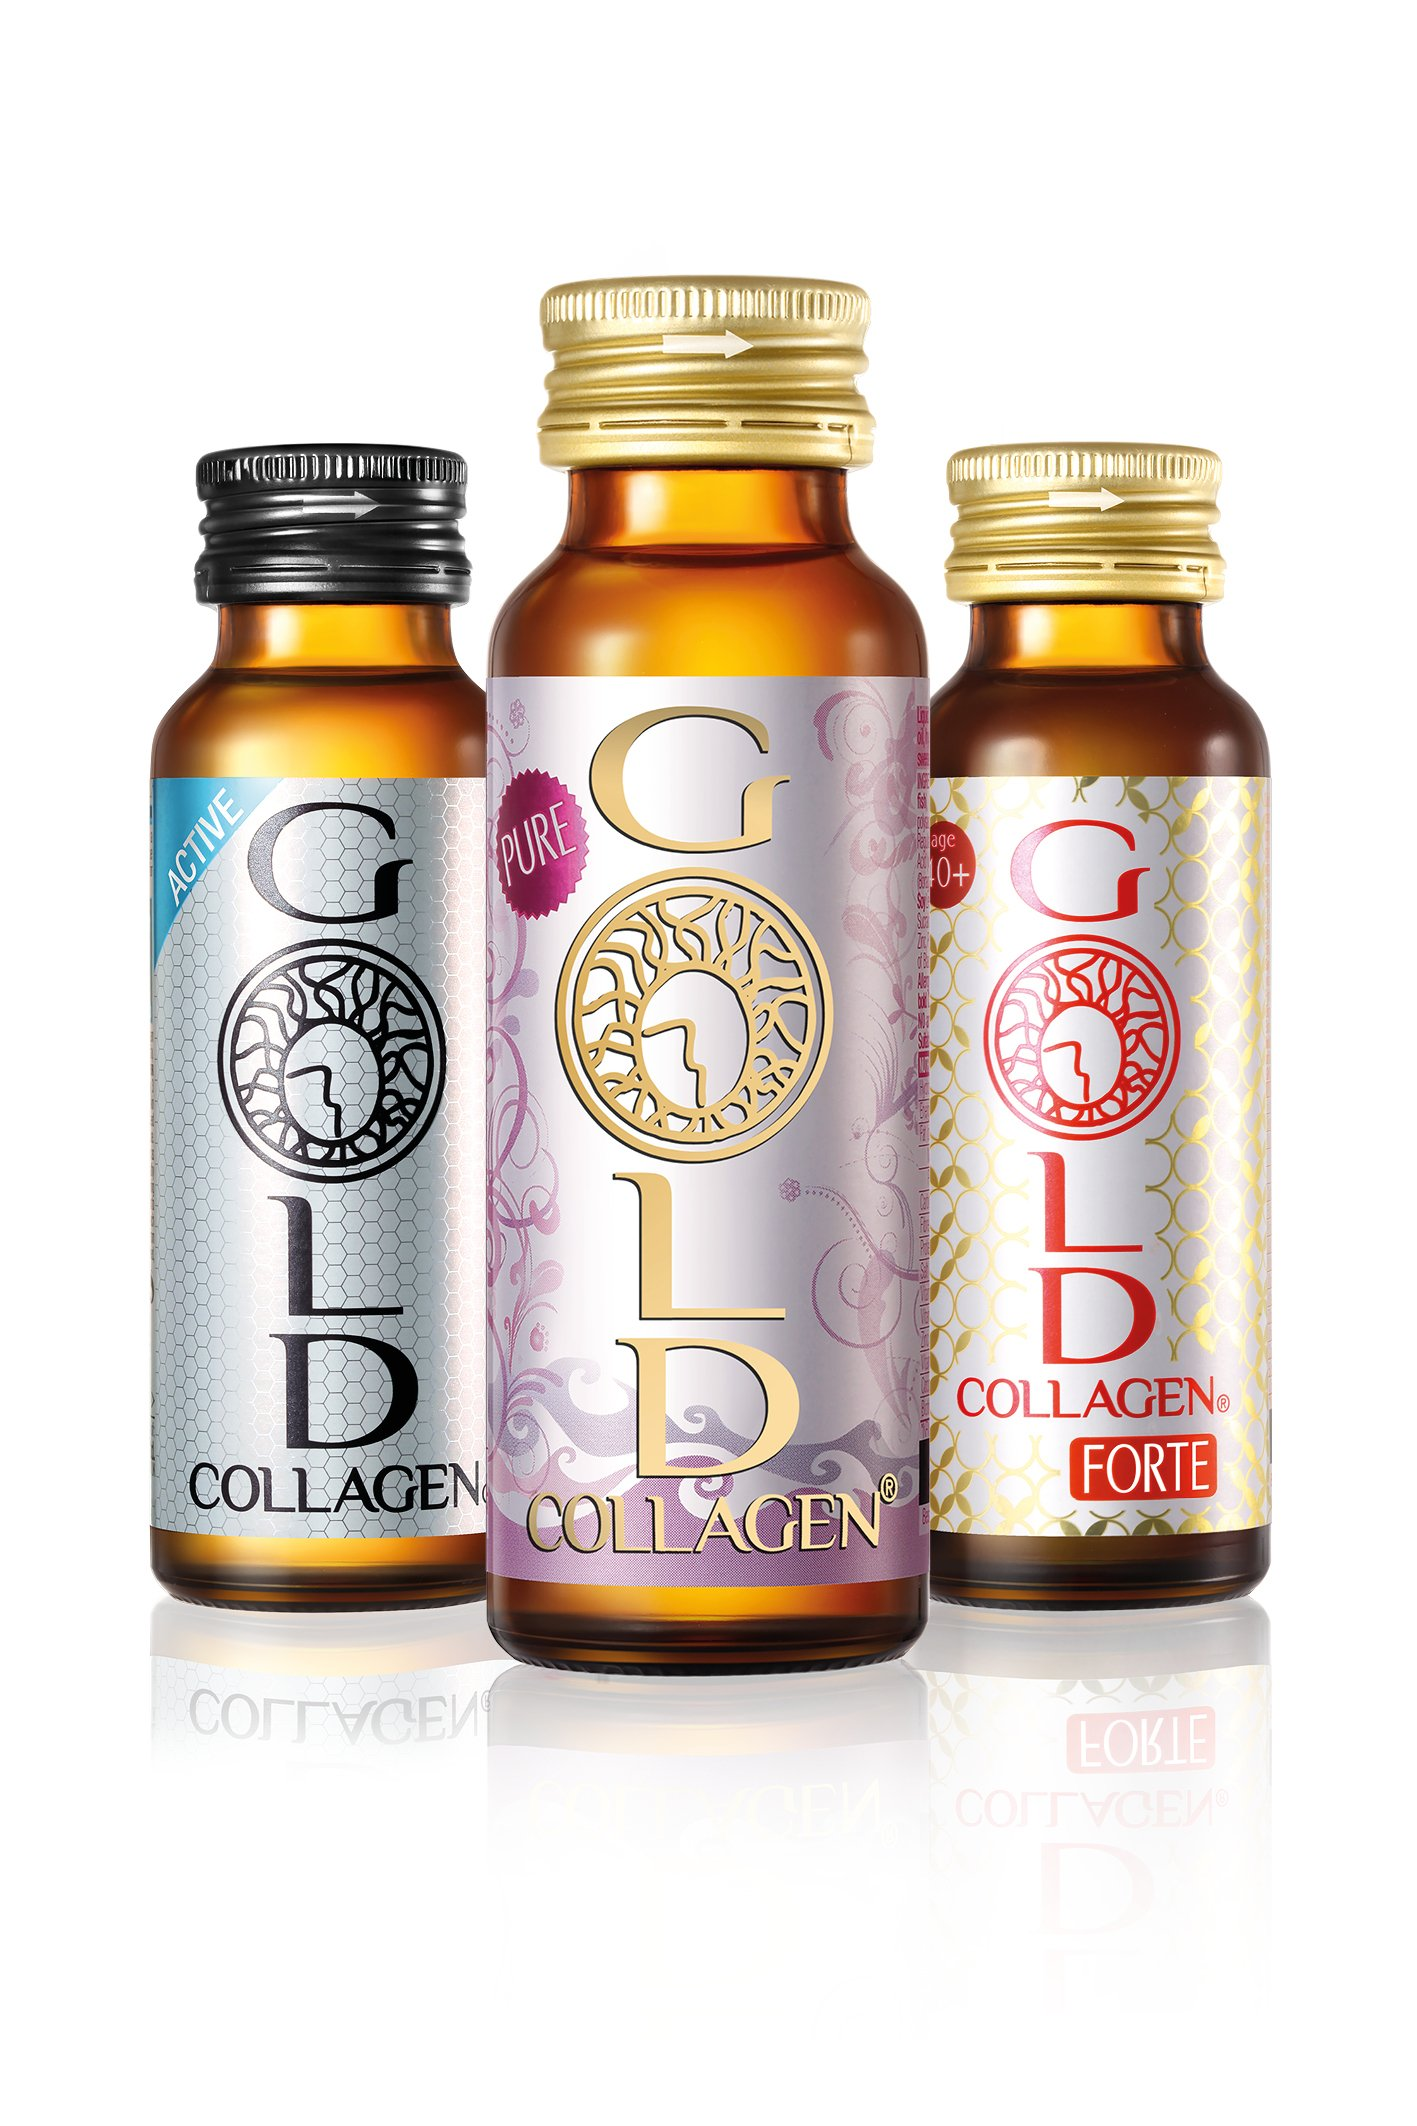 GOLD Collagen: Revolutionary Skincare In The Form Of A Drinkable Beauty Solution